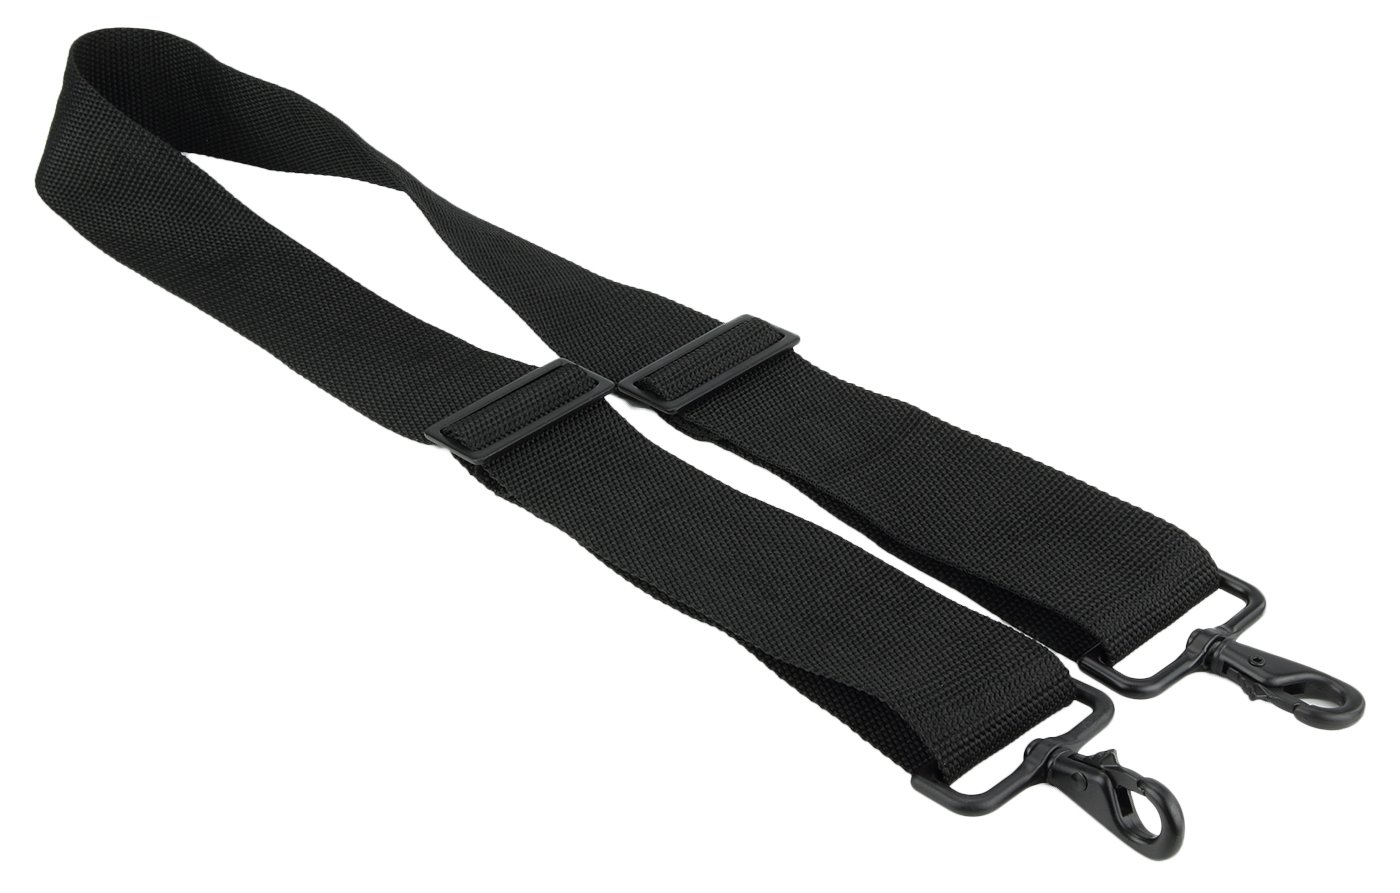 Made in USA 2''W x 60''L Black Poly Web Replacement Shoulder Luggage Travel Bag Strap Black Hardware with No Shoulder Pad